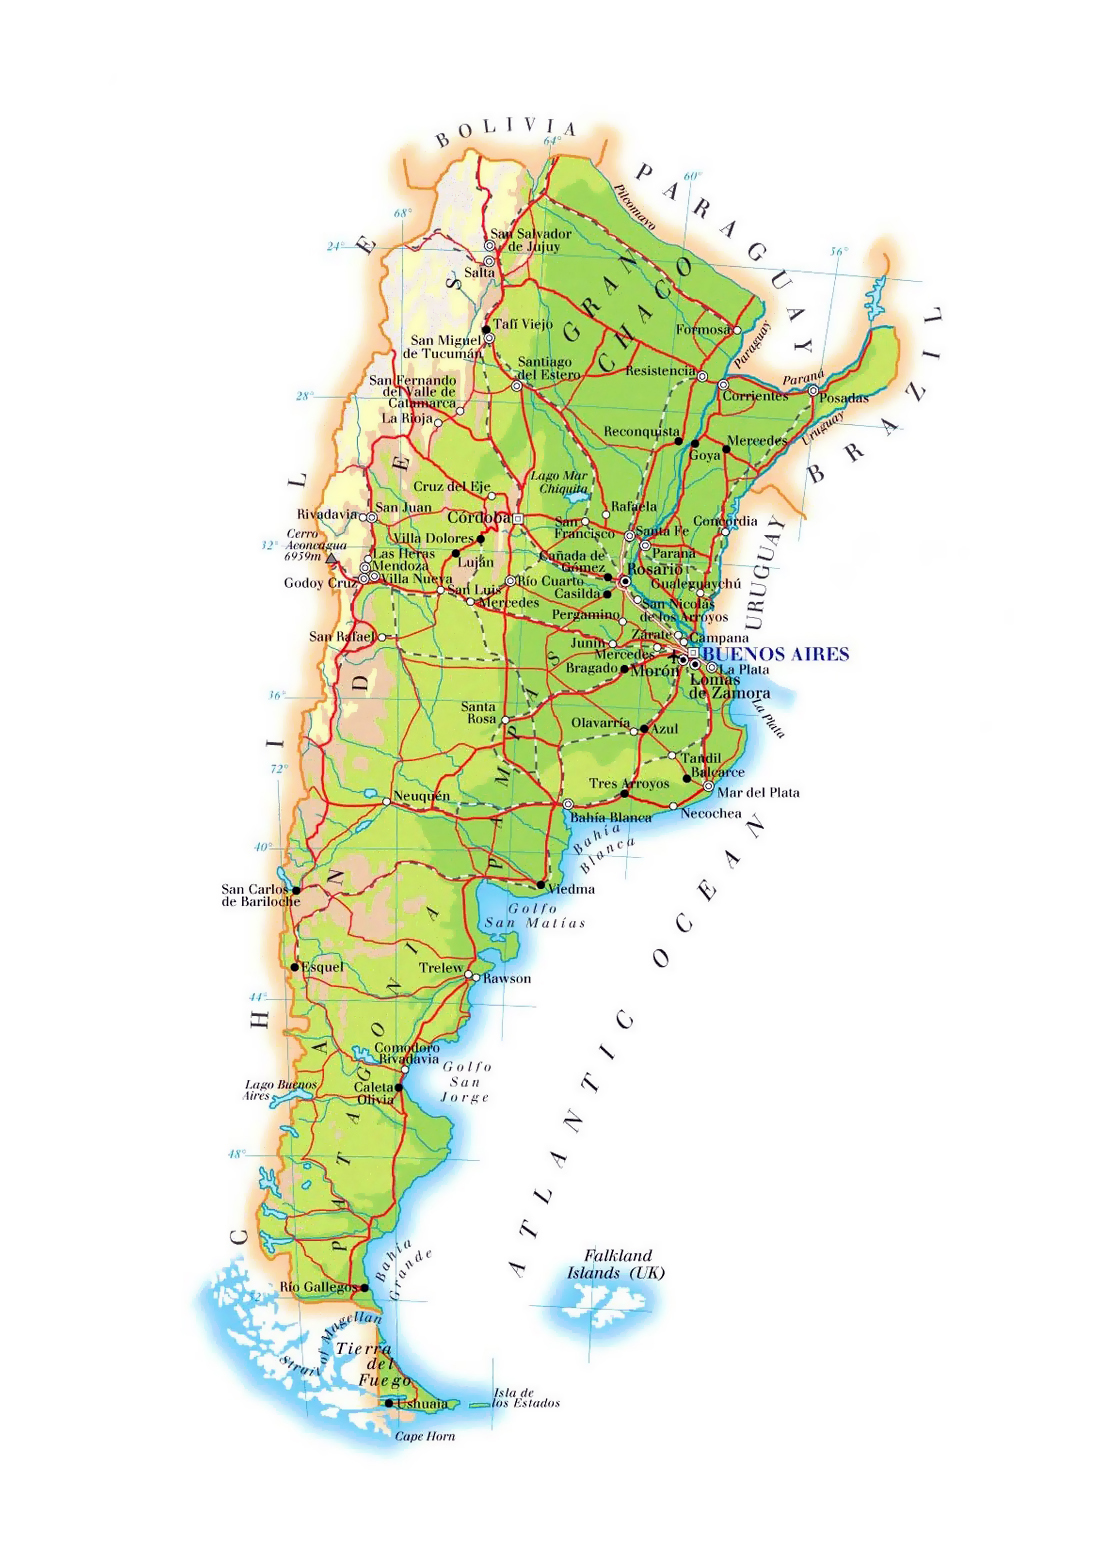 Large elevation map of Argentina with roads cities and airports